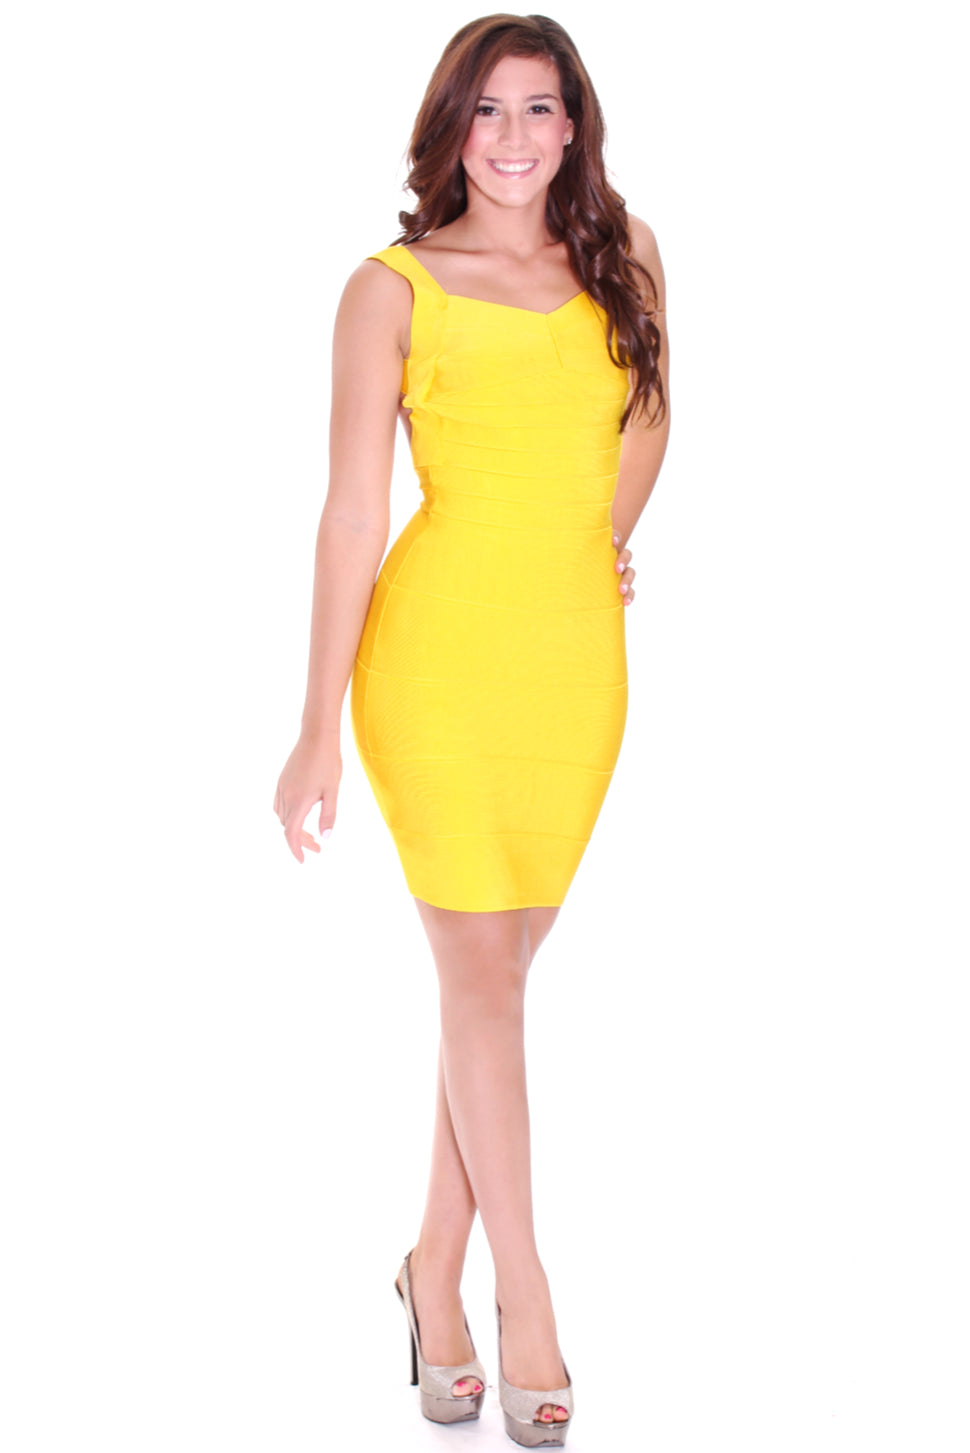 Rhonda backless bandage dress - ebrook lael